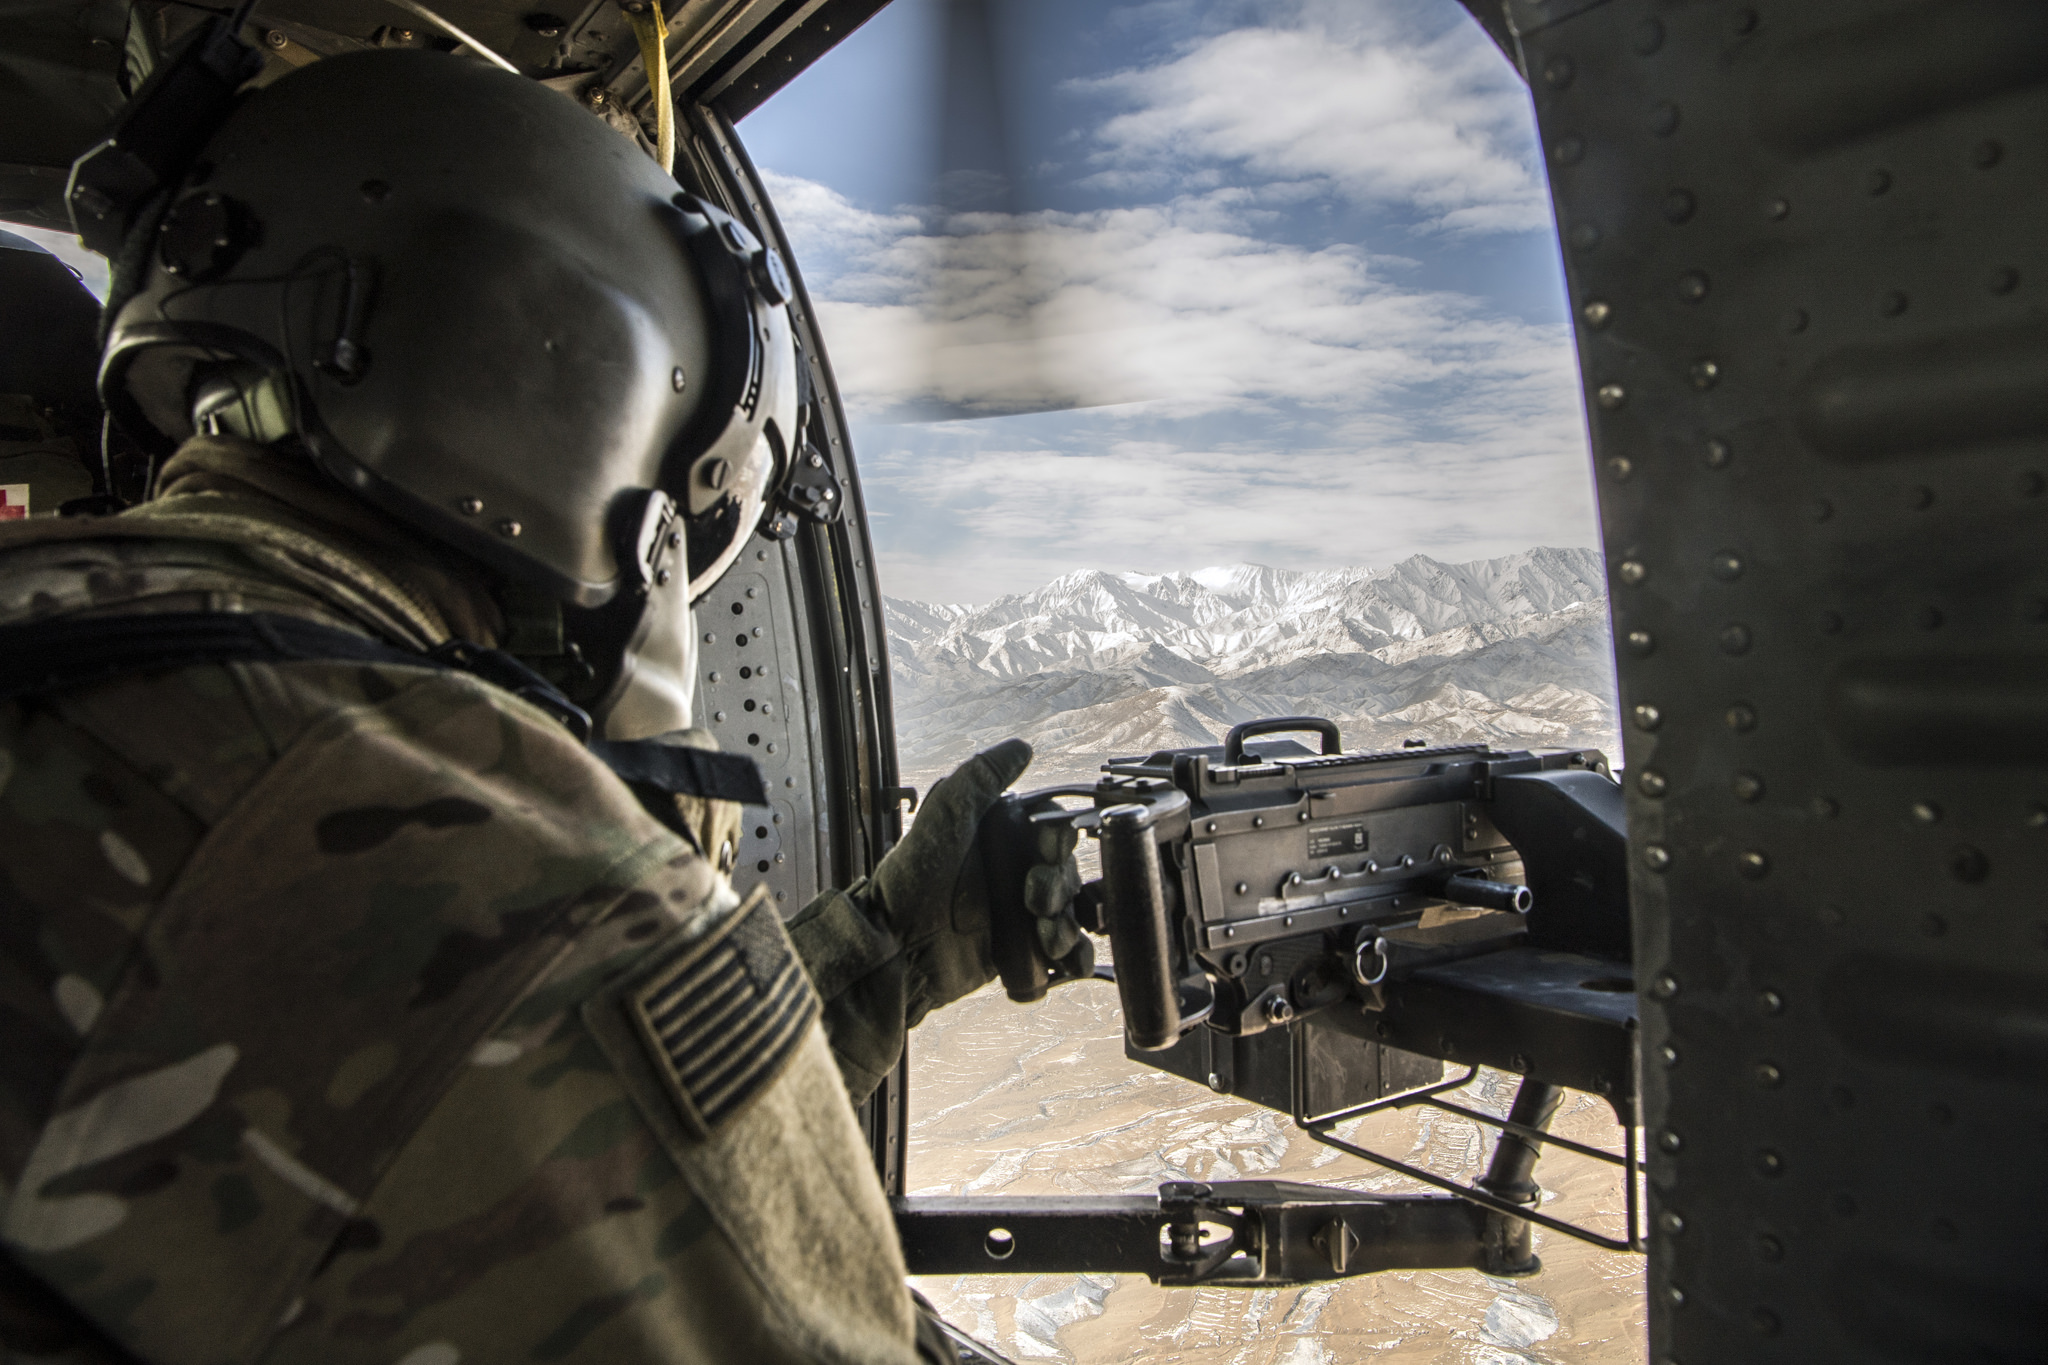 U.S. Army Soldier, assigned to 3rd Infantry Division, conducts aerial observation over Afghanistan. U.S. Army photo by John Martinez